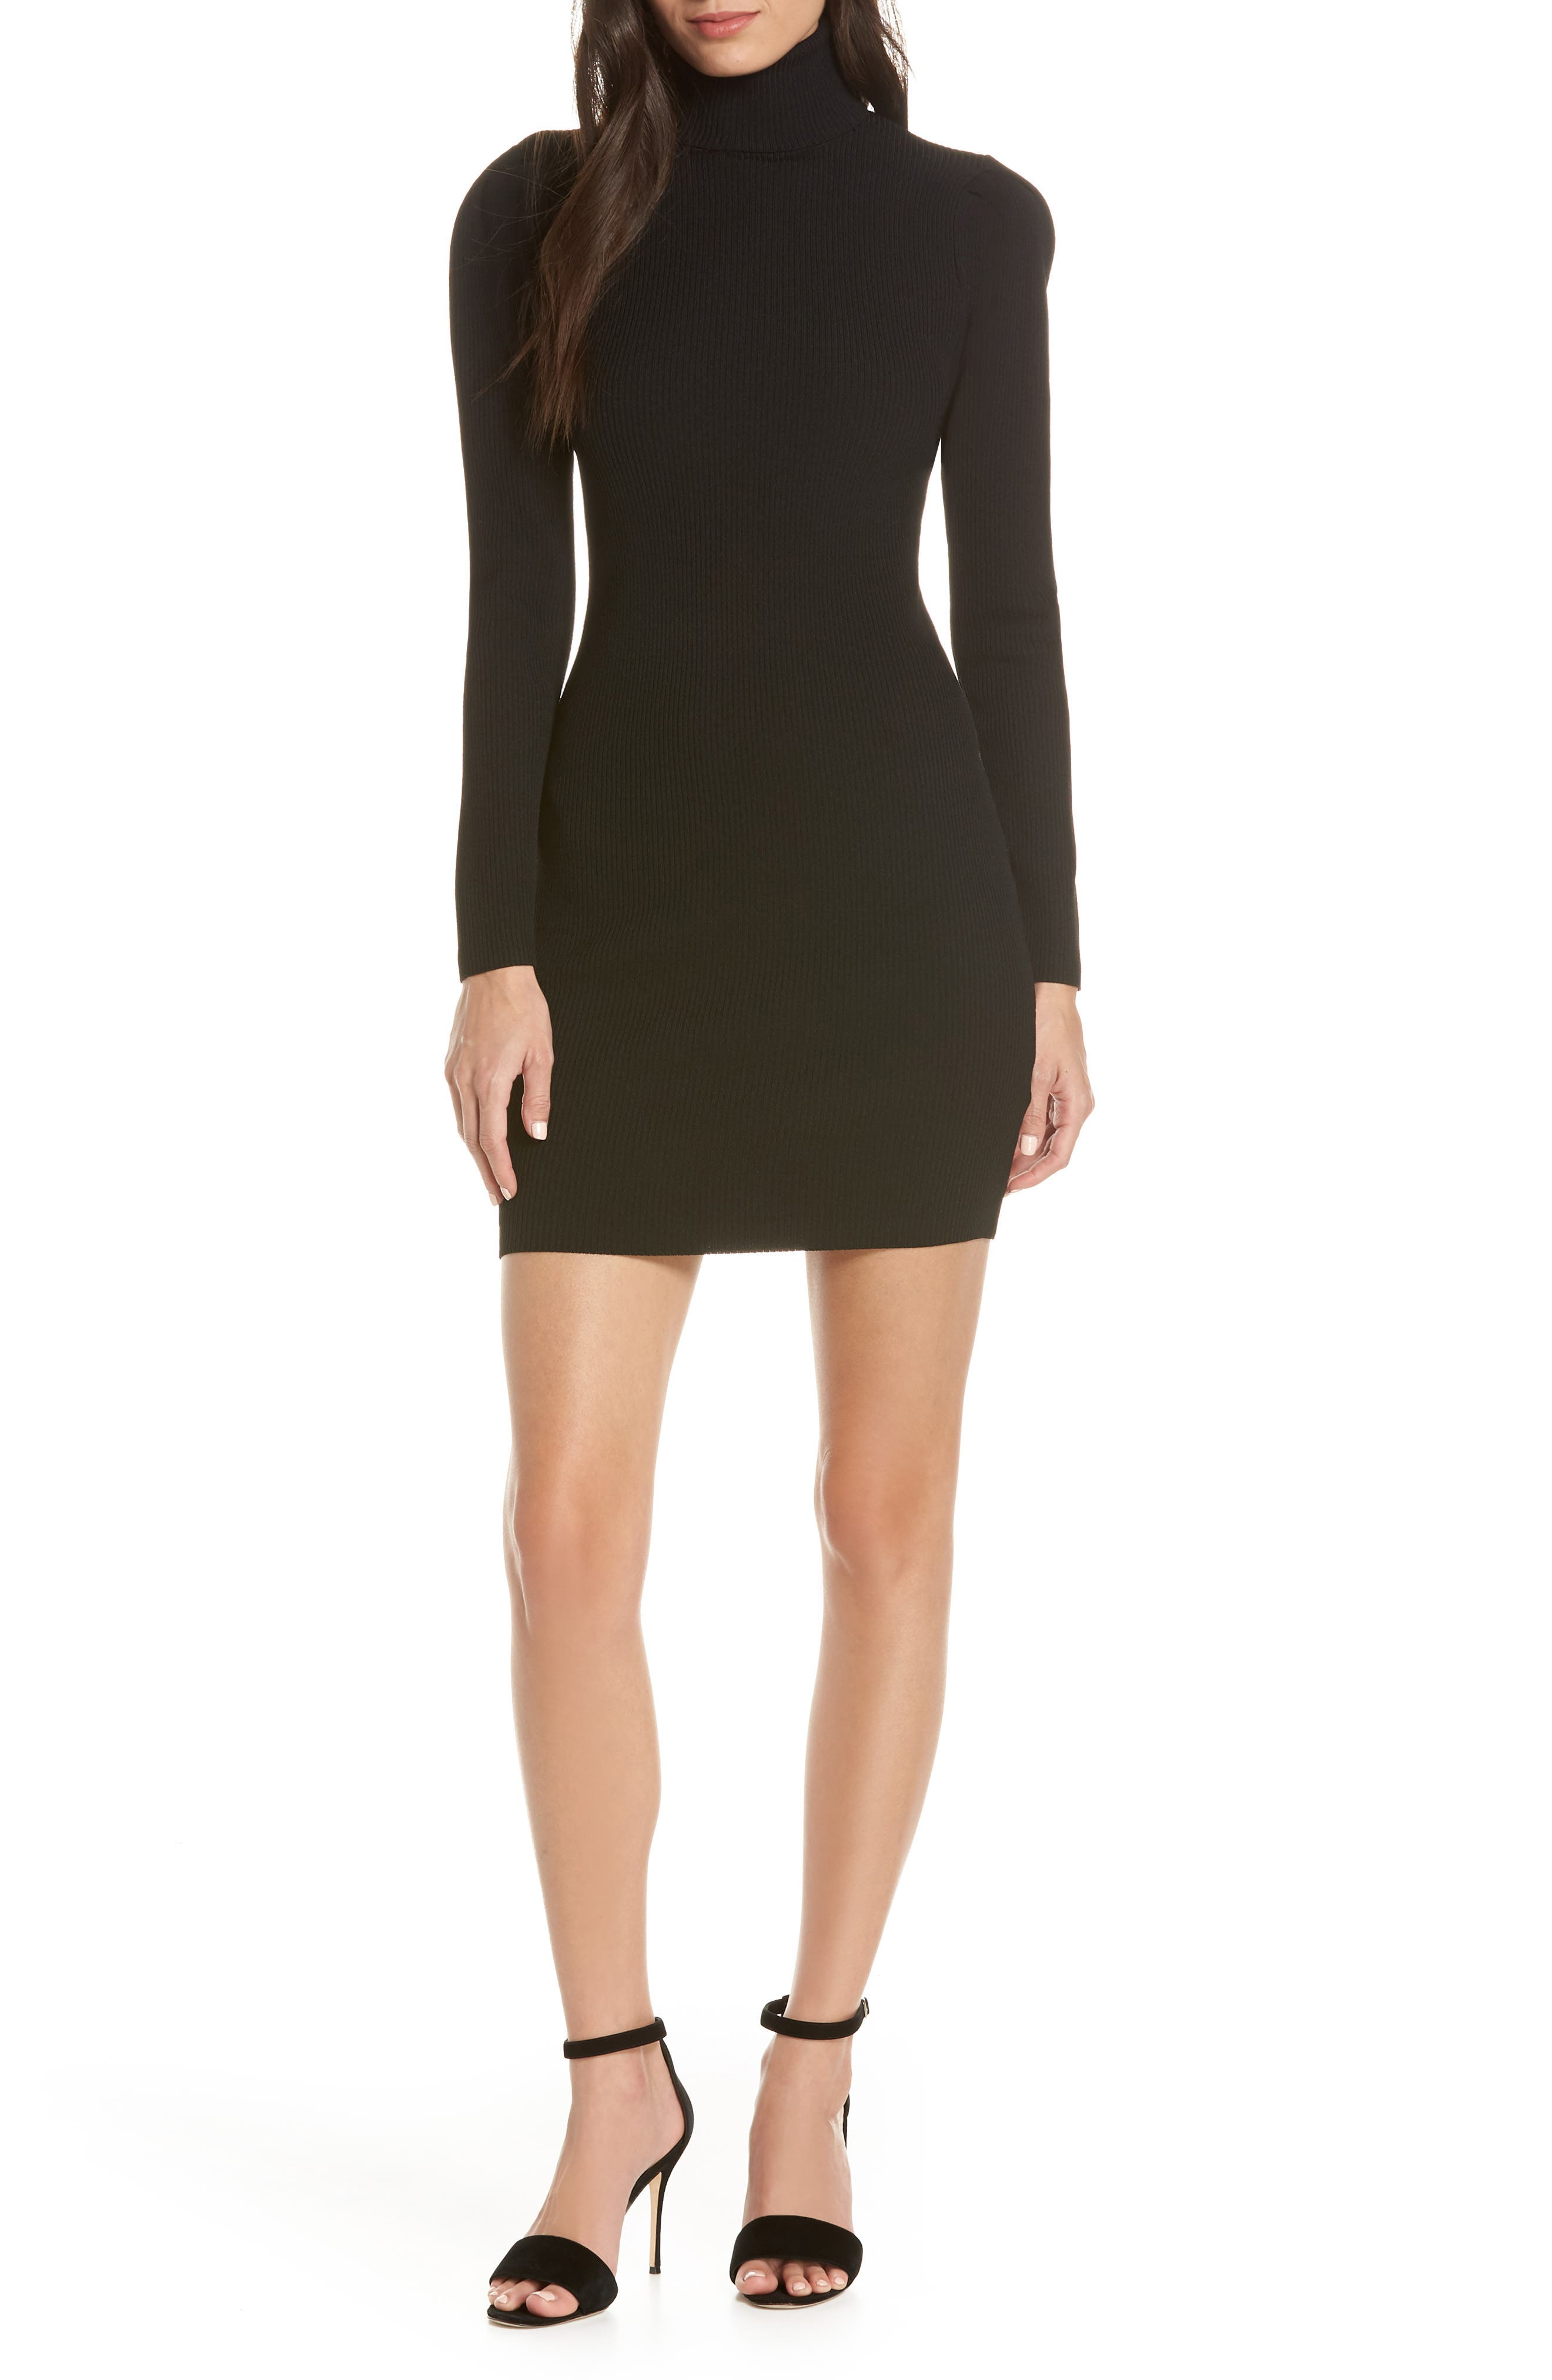 ALI & JAY, Best of My Love Turtleneck Sweater Dress, Main thumbnail 1, color, 001